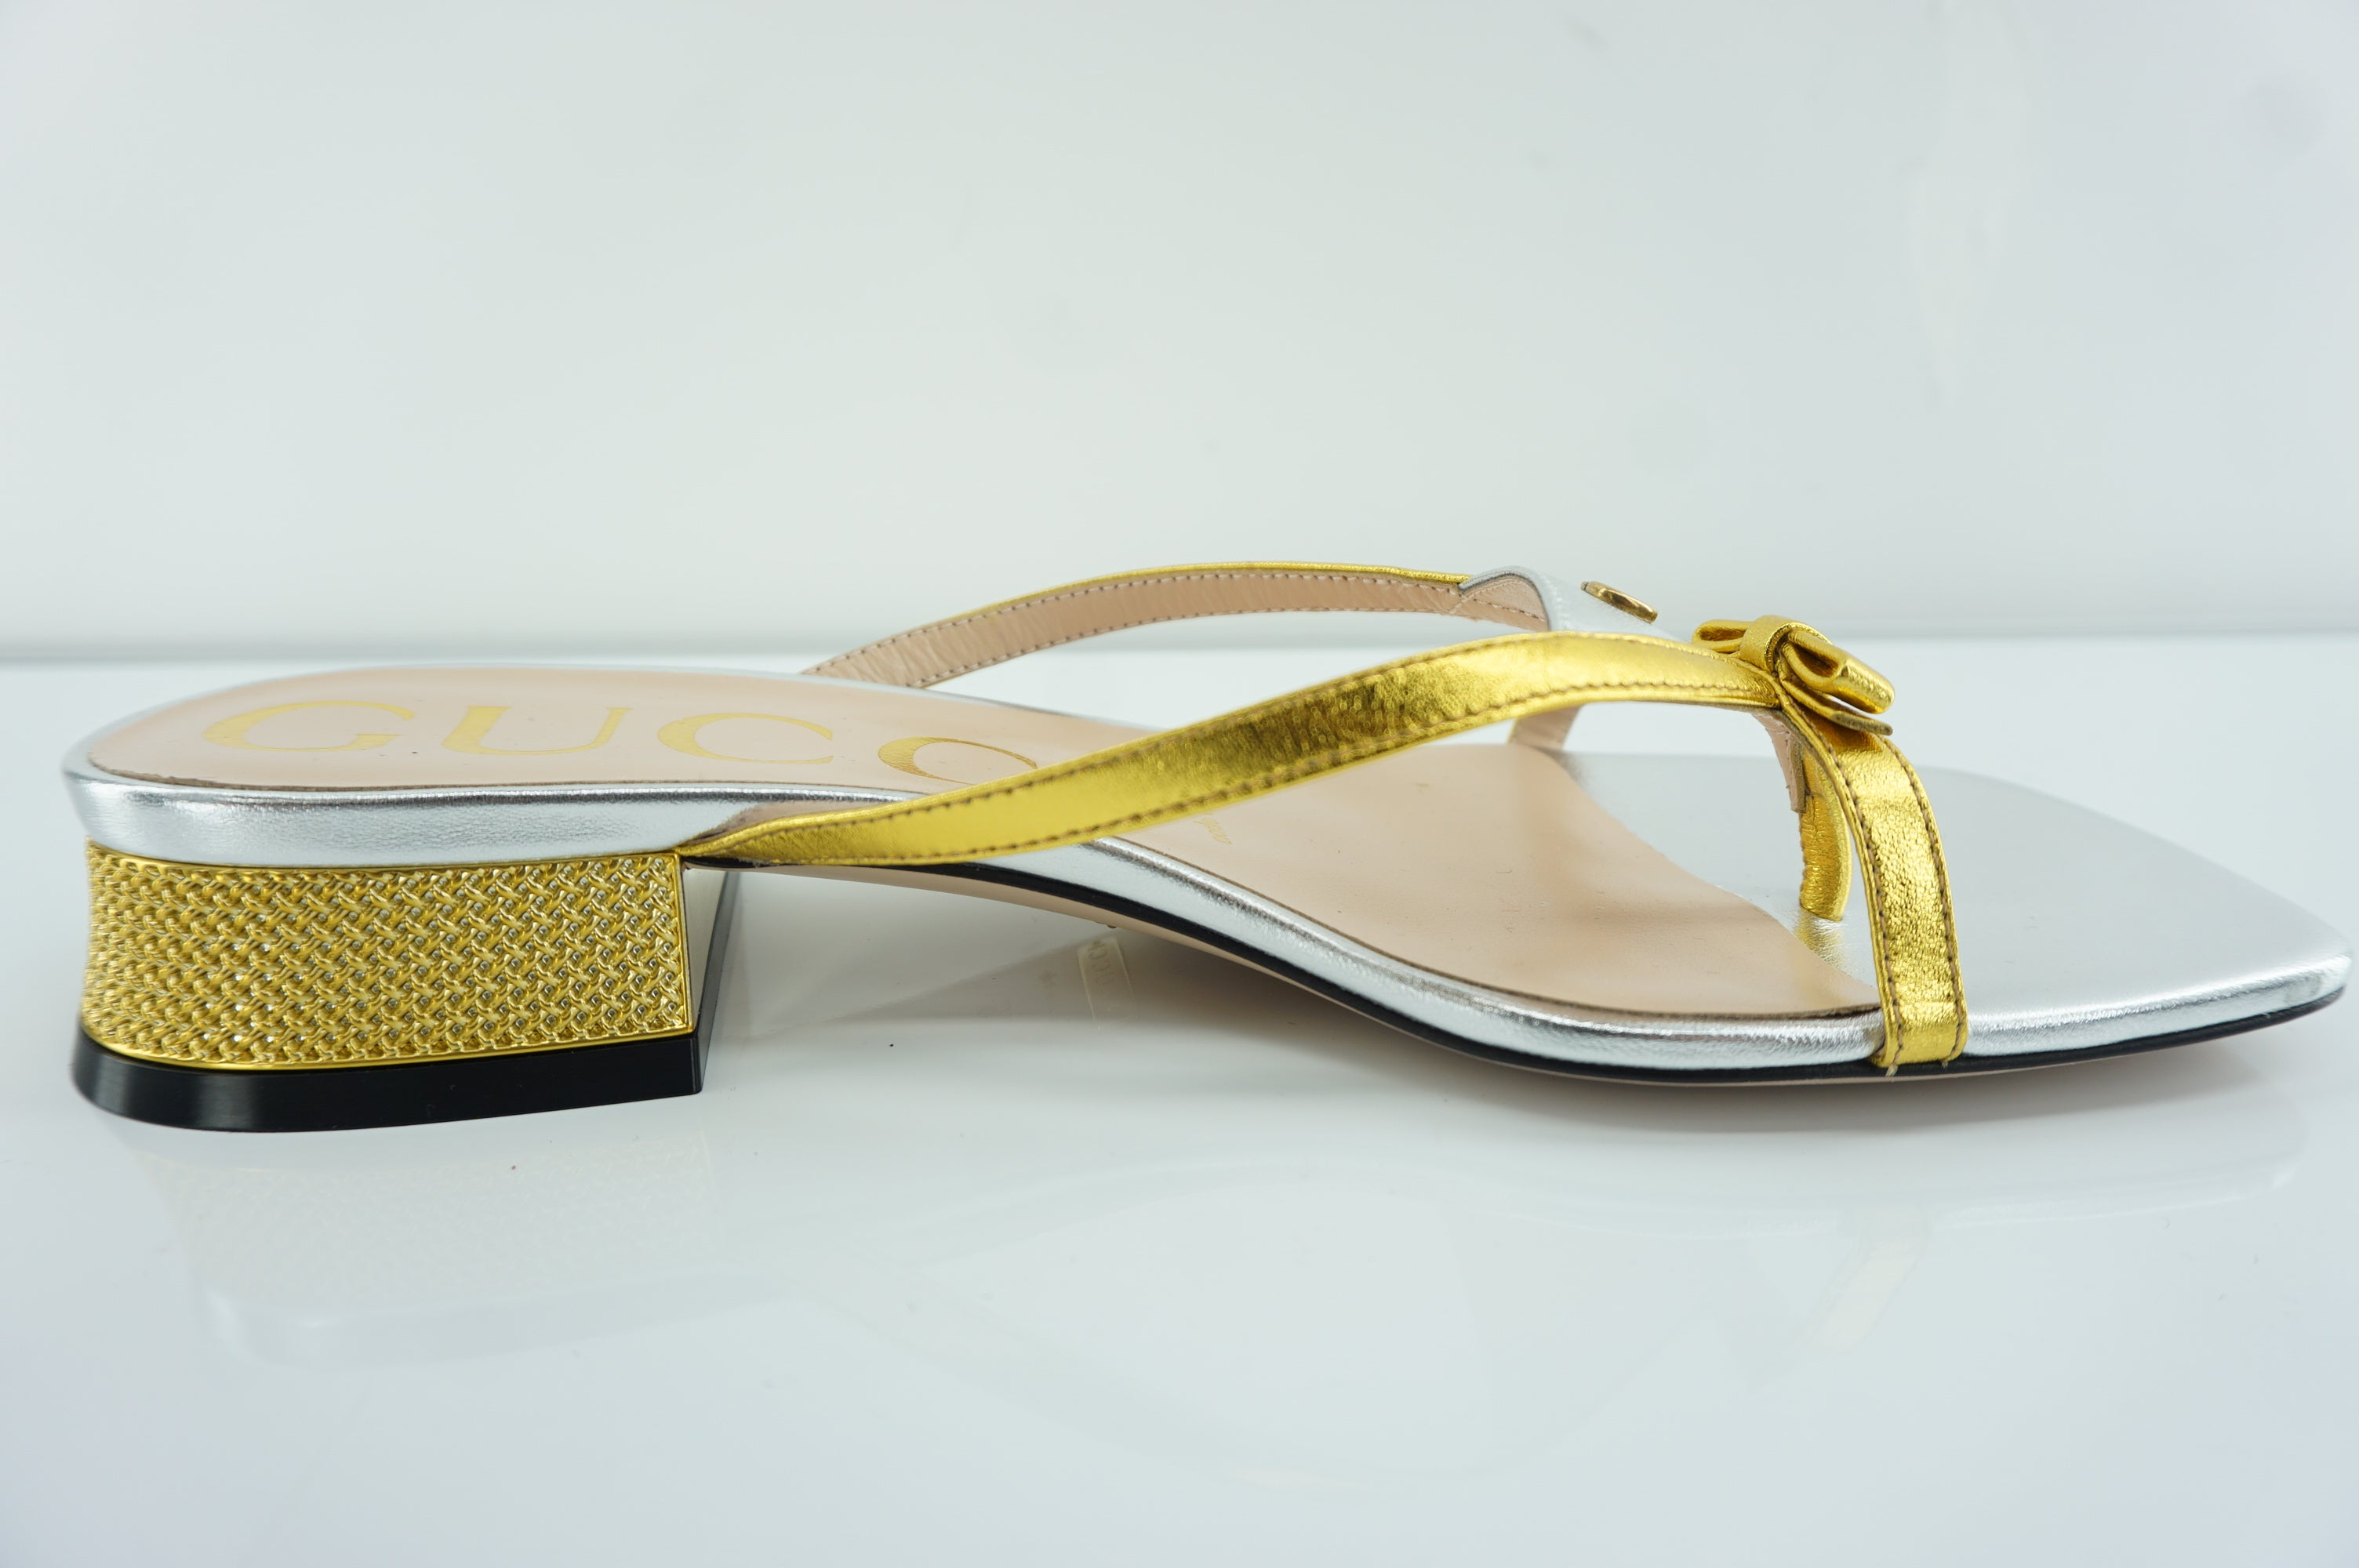 Gucci Alison Bow Gold Silver Strappy Metallic Sandals Size 35 NIB $750 Logo